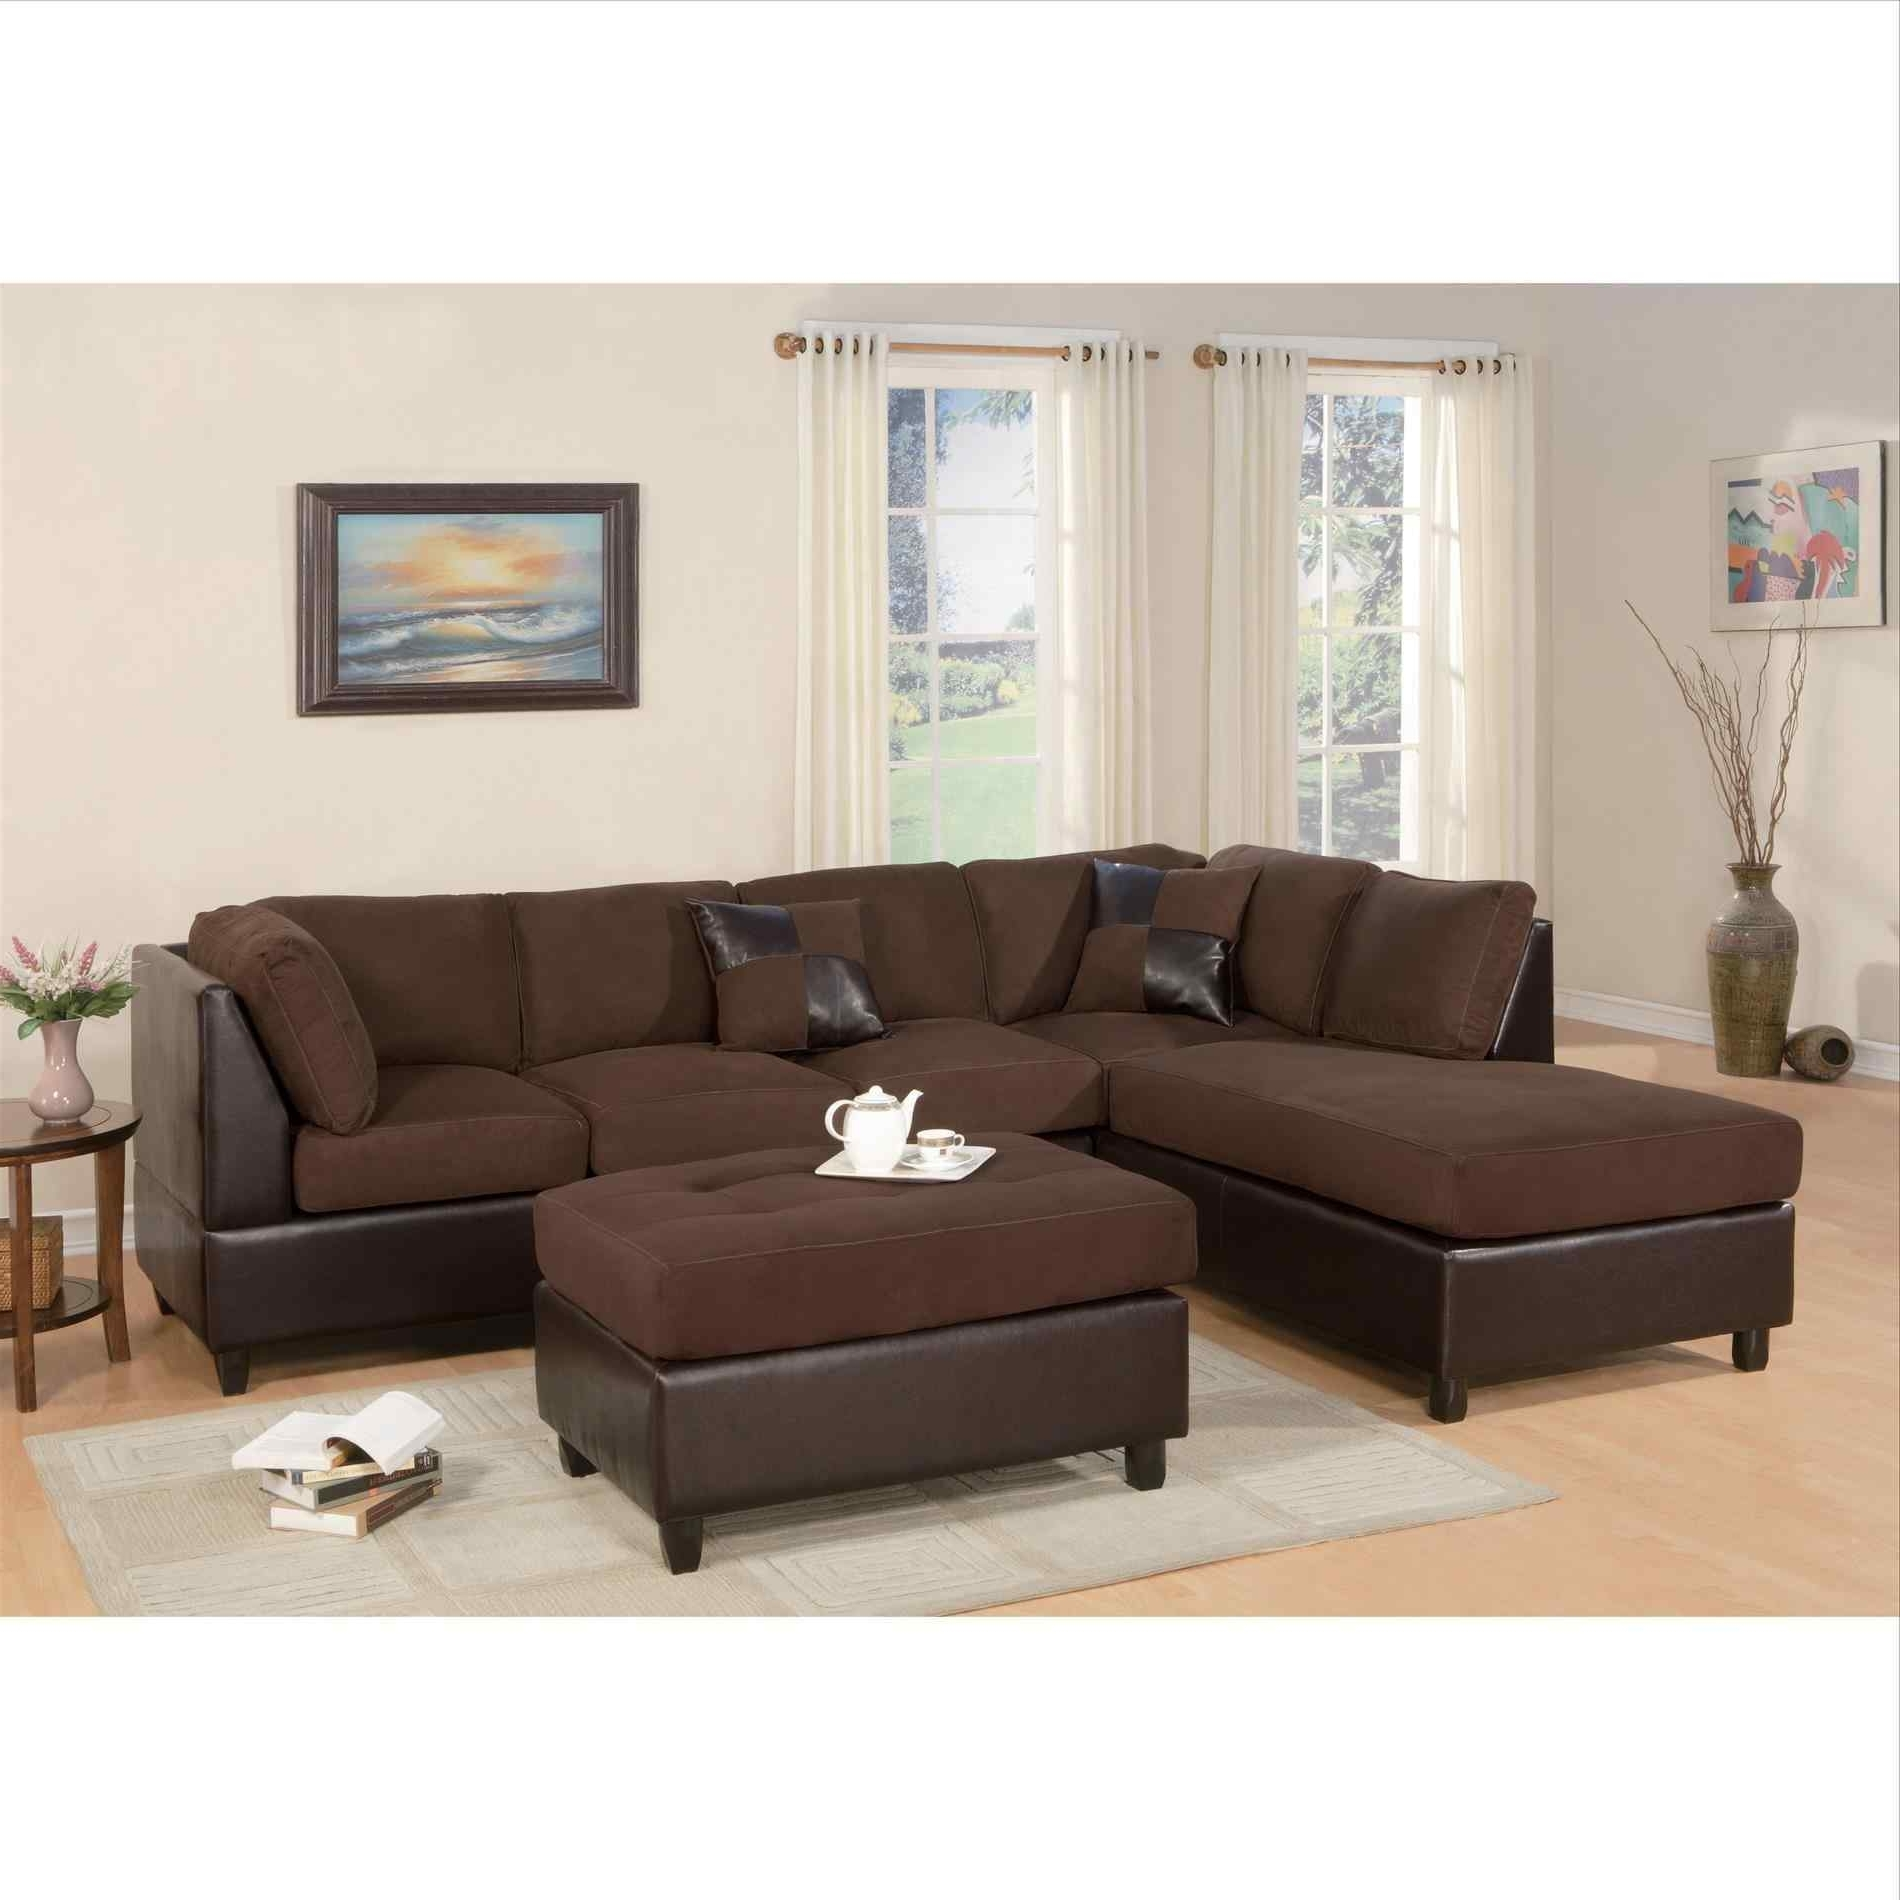 Cheap Sectional Sofas Houston Tx (View 2 of 20)